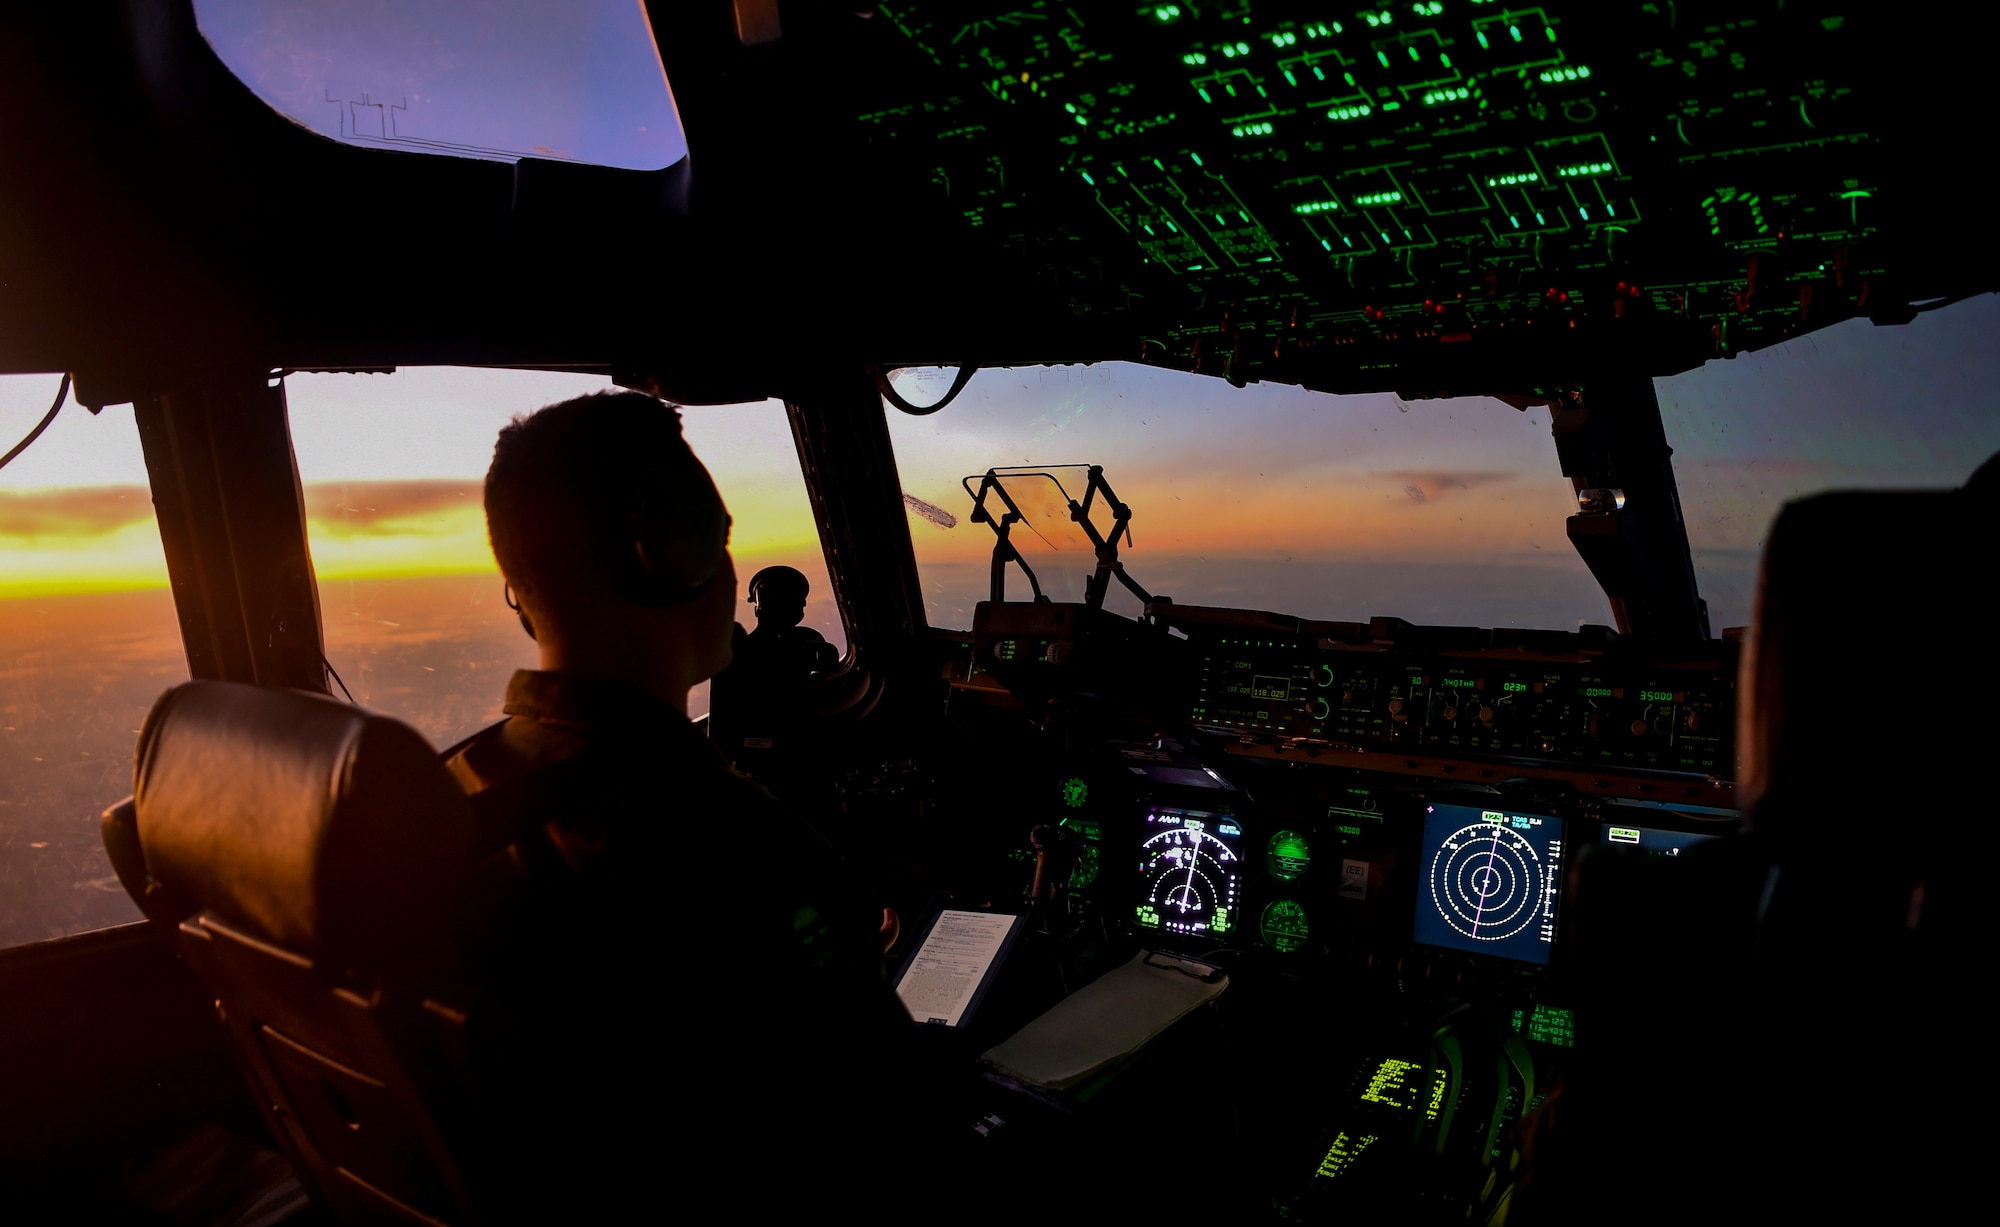 Capt. Jared Powell, 15th Airlift Squadron C-17 Globemaster III aircraft commander, flies a C-17 to pick up aid cargo for a humanitarian mission to Puerto Rico, Sept. 28th, 2017.